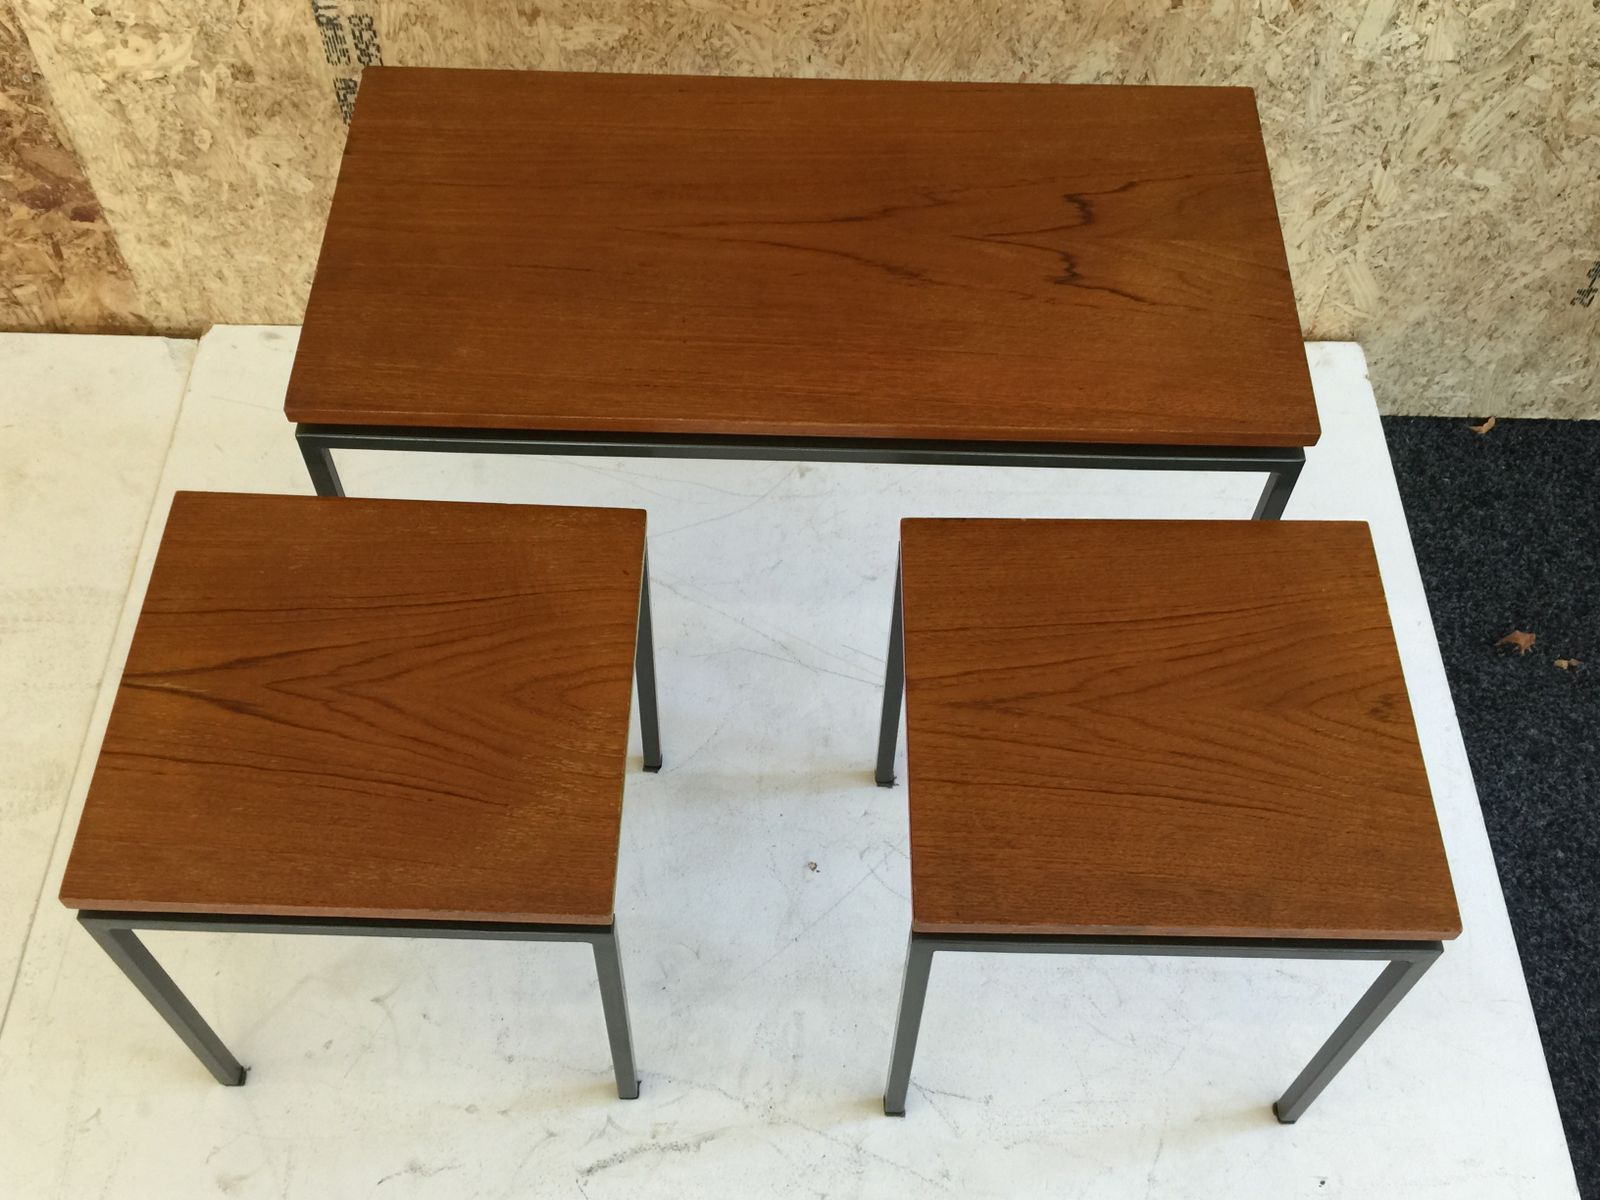 Wonderful image of Dutch Teak Nesting Tables from Pastoe 1960s Set of 3 for sale at  with #723B12 color and 1600x1200 pixels